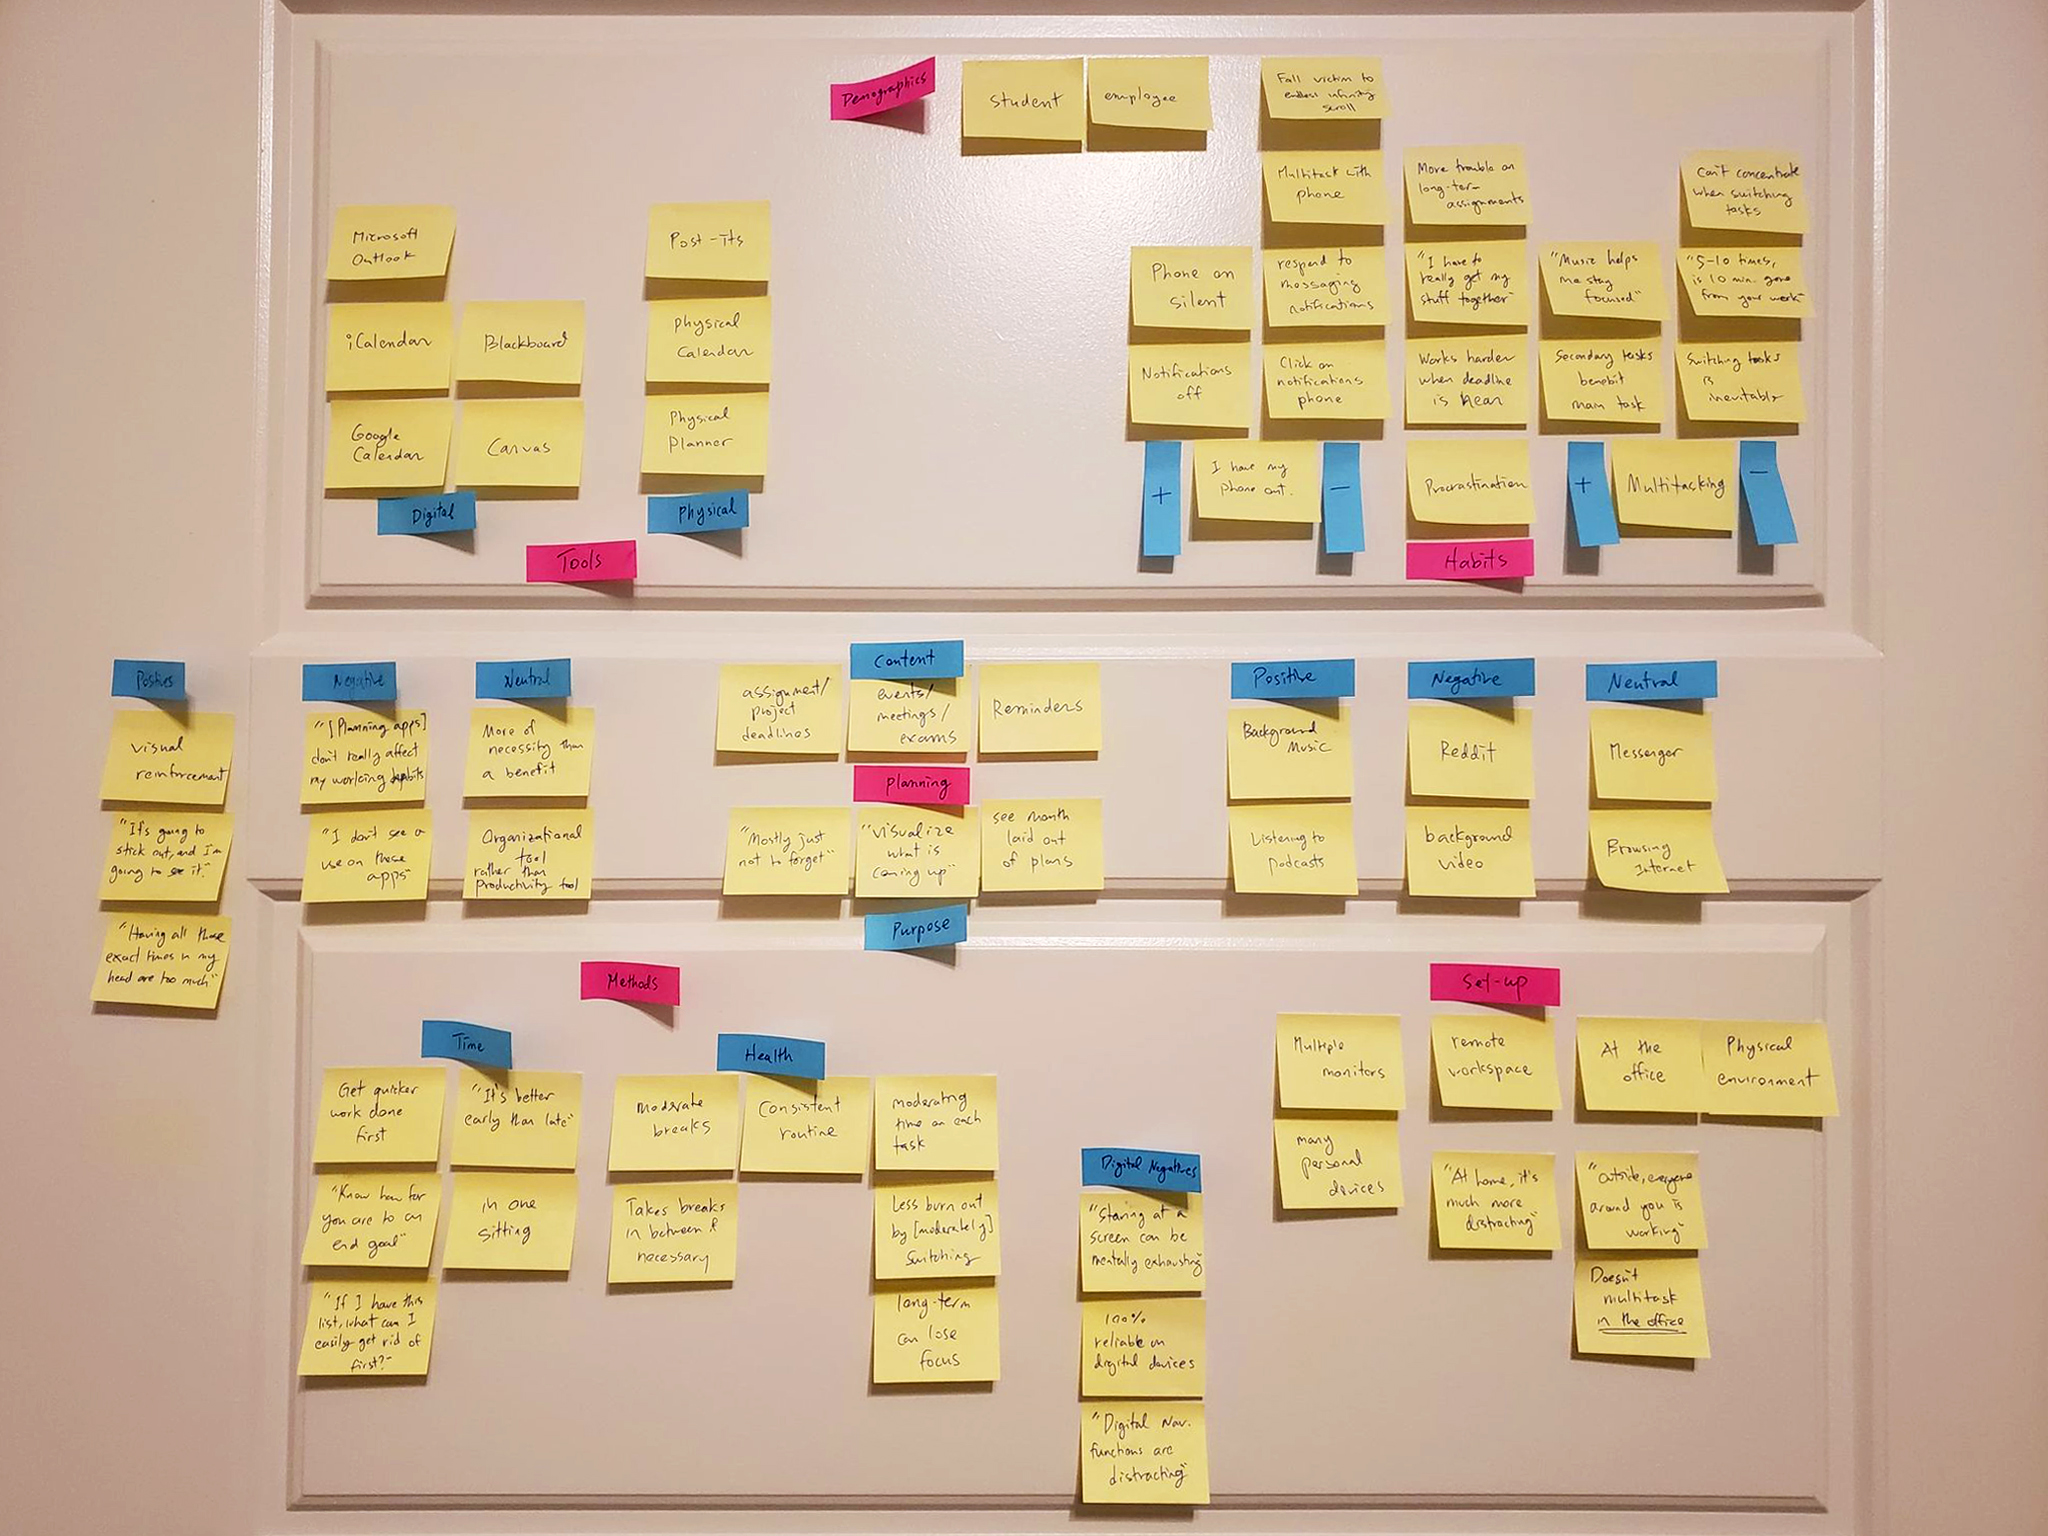 Affinity mapping gathering trends from surveys and interview responses